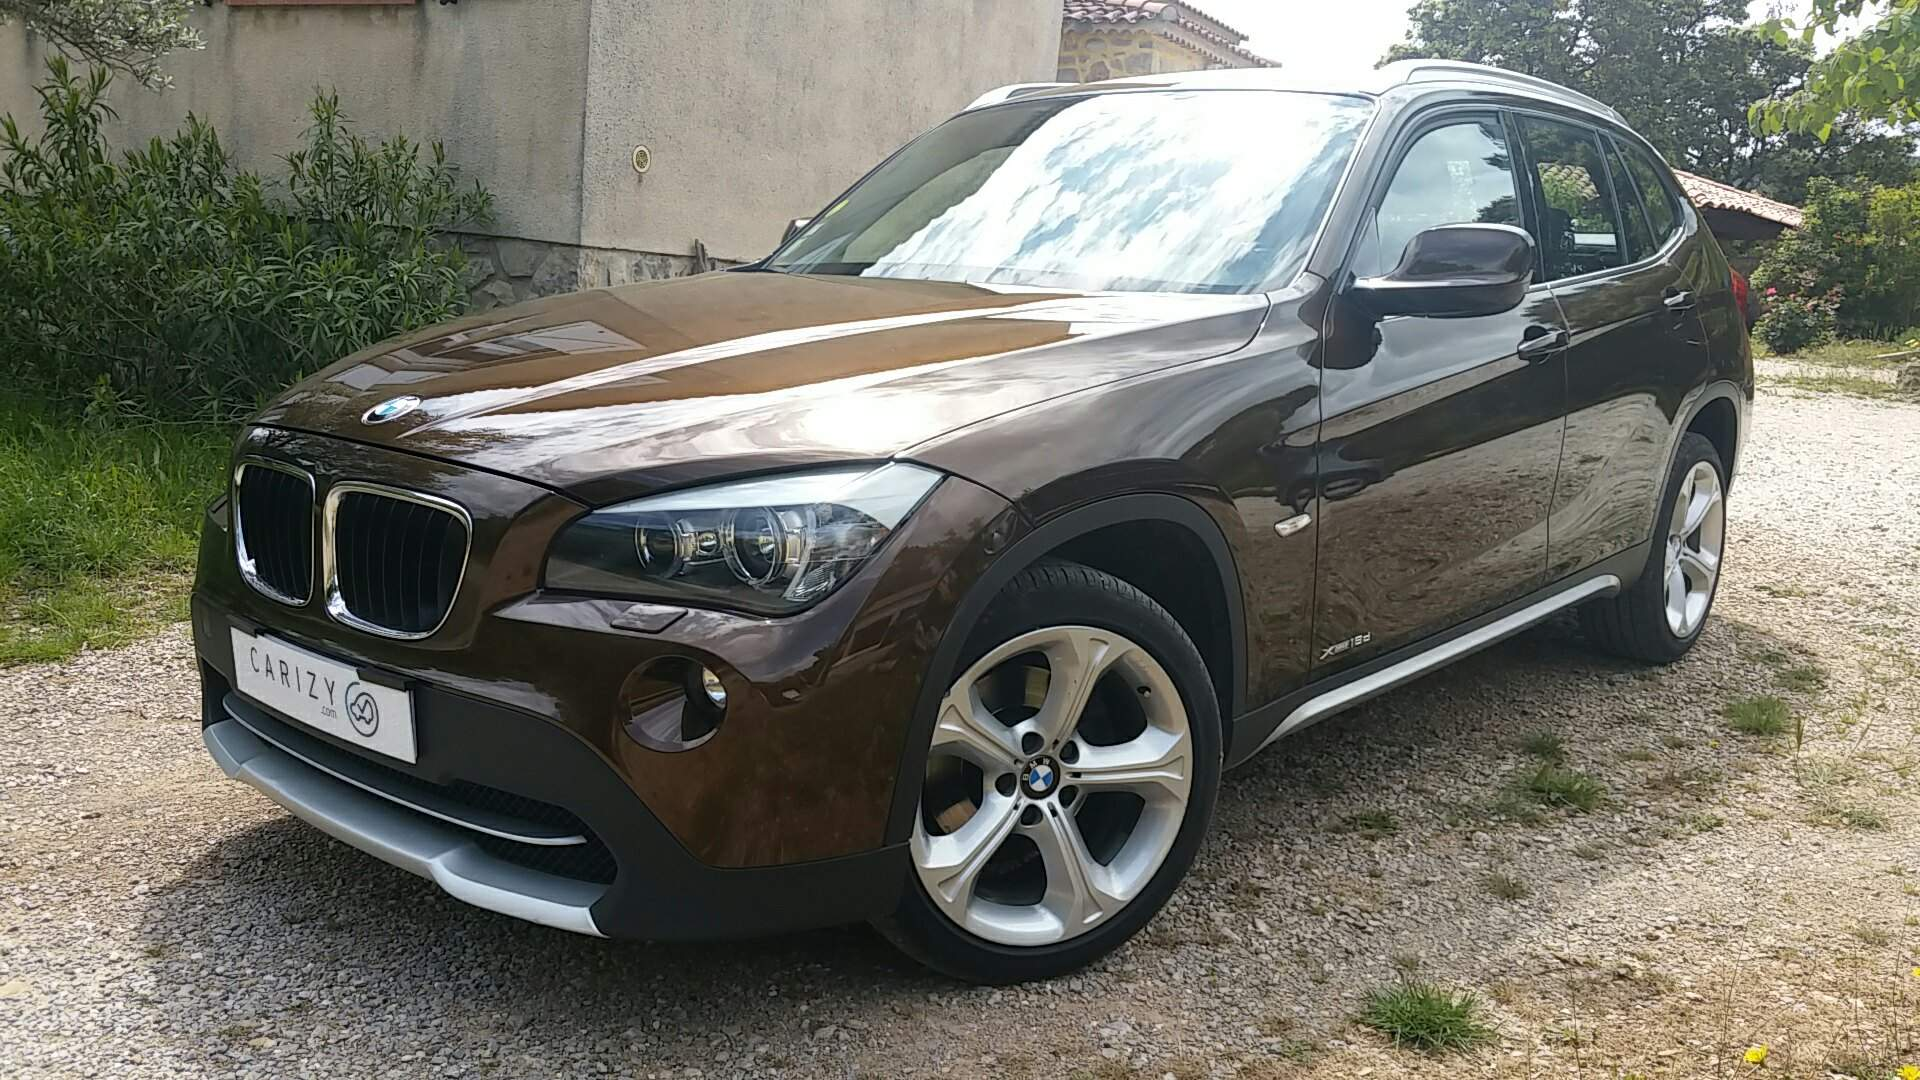 voiture bmw x1 1 8 d 140 luxe xdrive bva occasion diesel. Black Bedroom Furniture Sets. Home Design Ideas